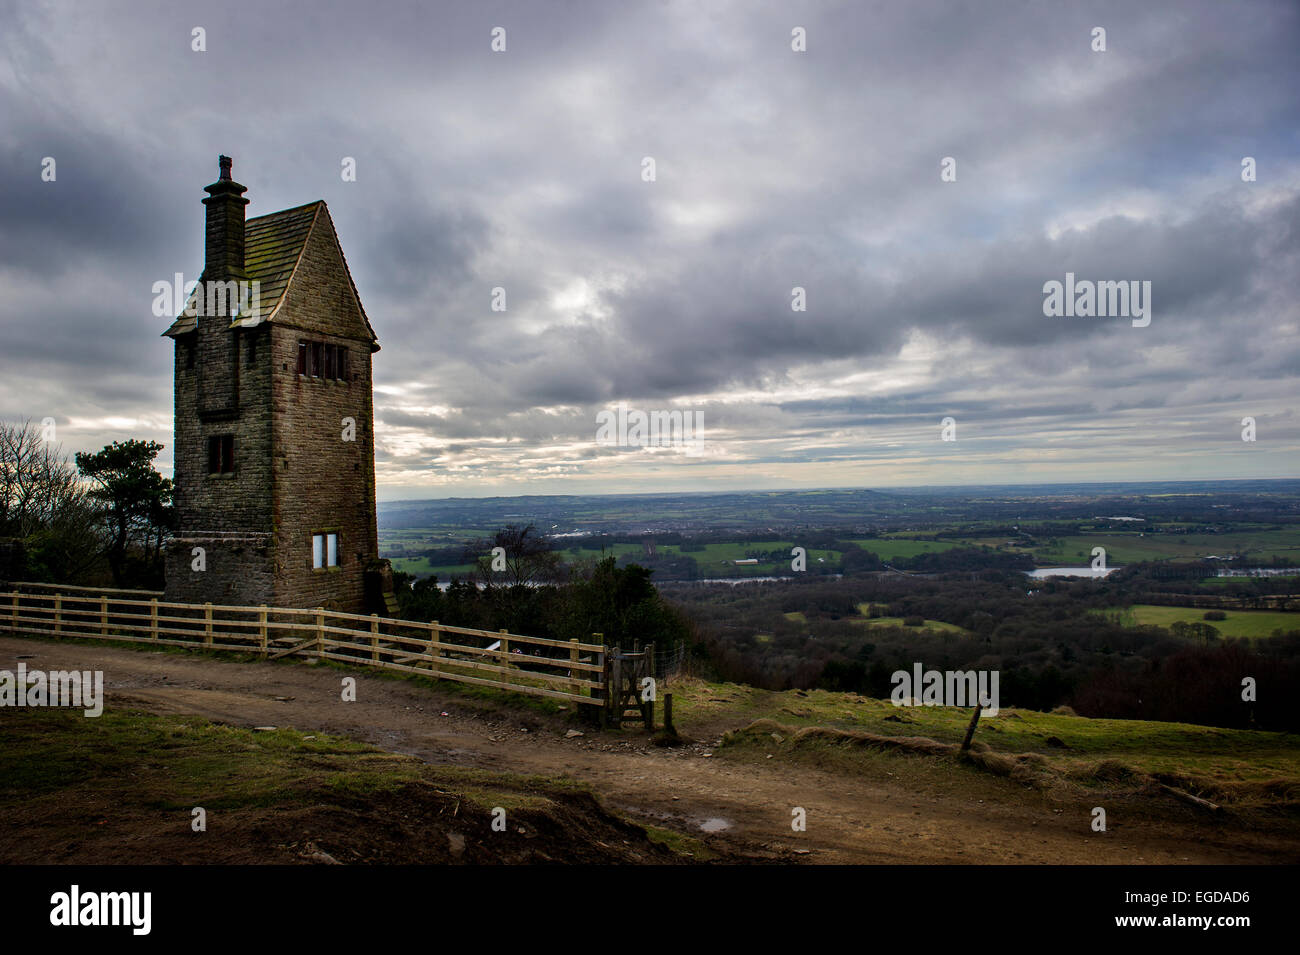 Pike Nursery Near Me: The Pigeon Tower In Rivington Garden's Rivington Pike